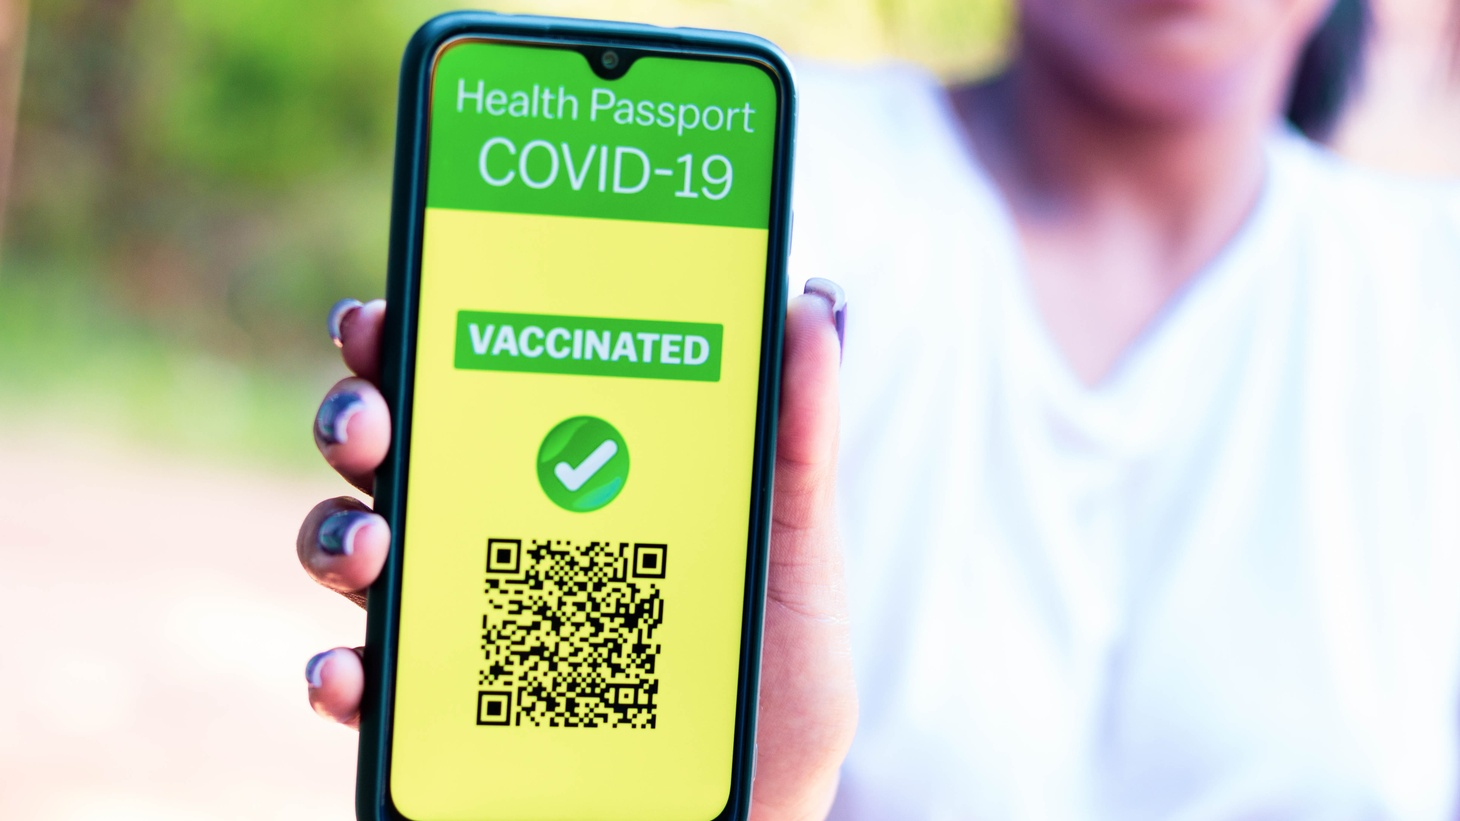 In this photo illustration, a woman shows digital proof that she's been vaccinated against COVID-19.